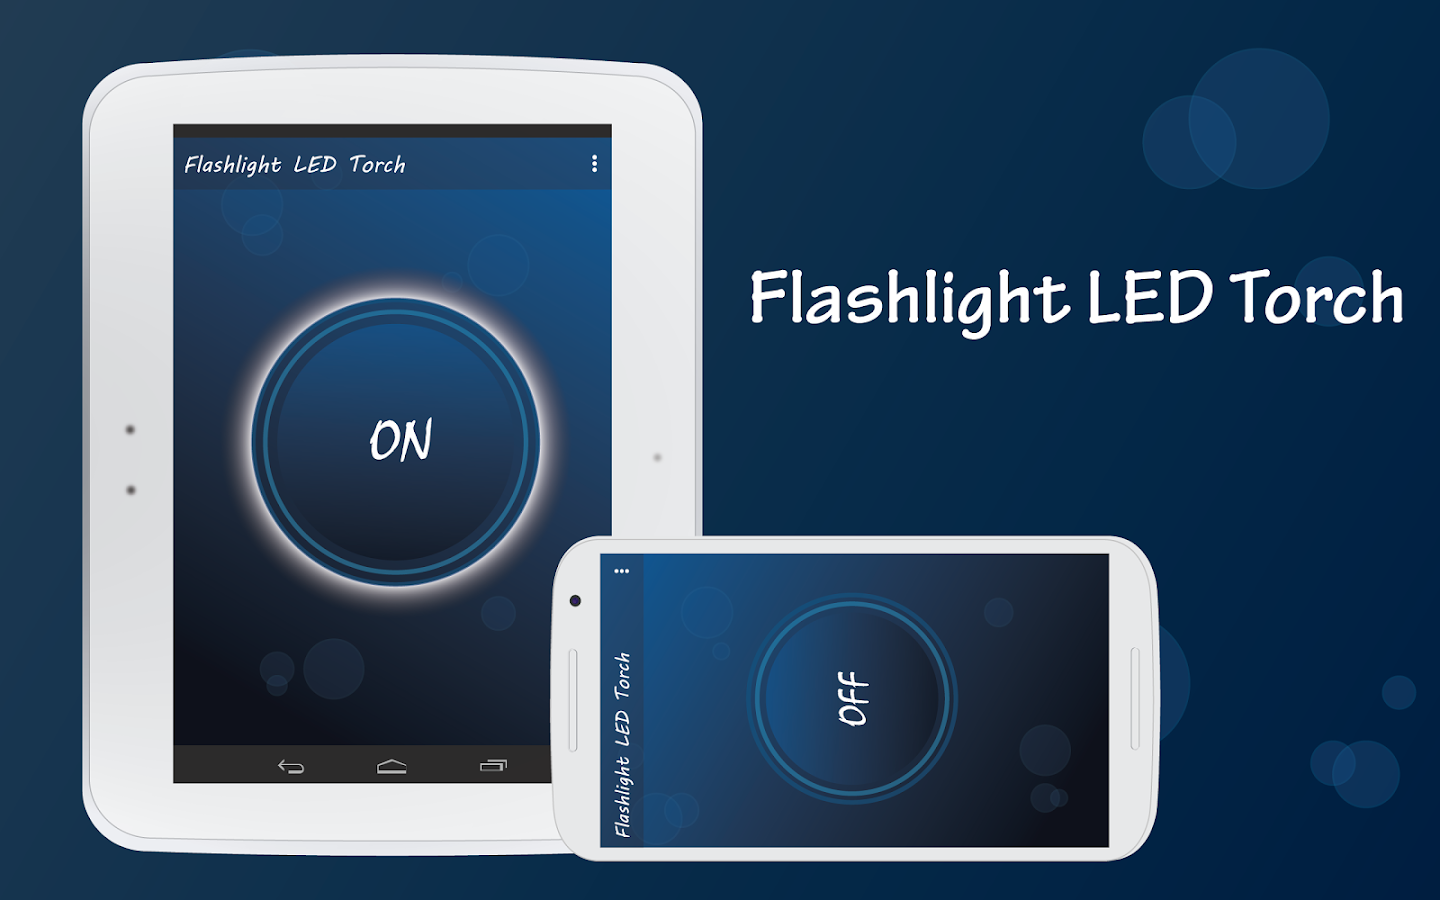 Flashlight LED Torch Screenshot 2